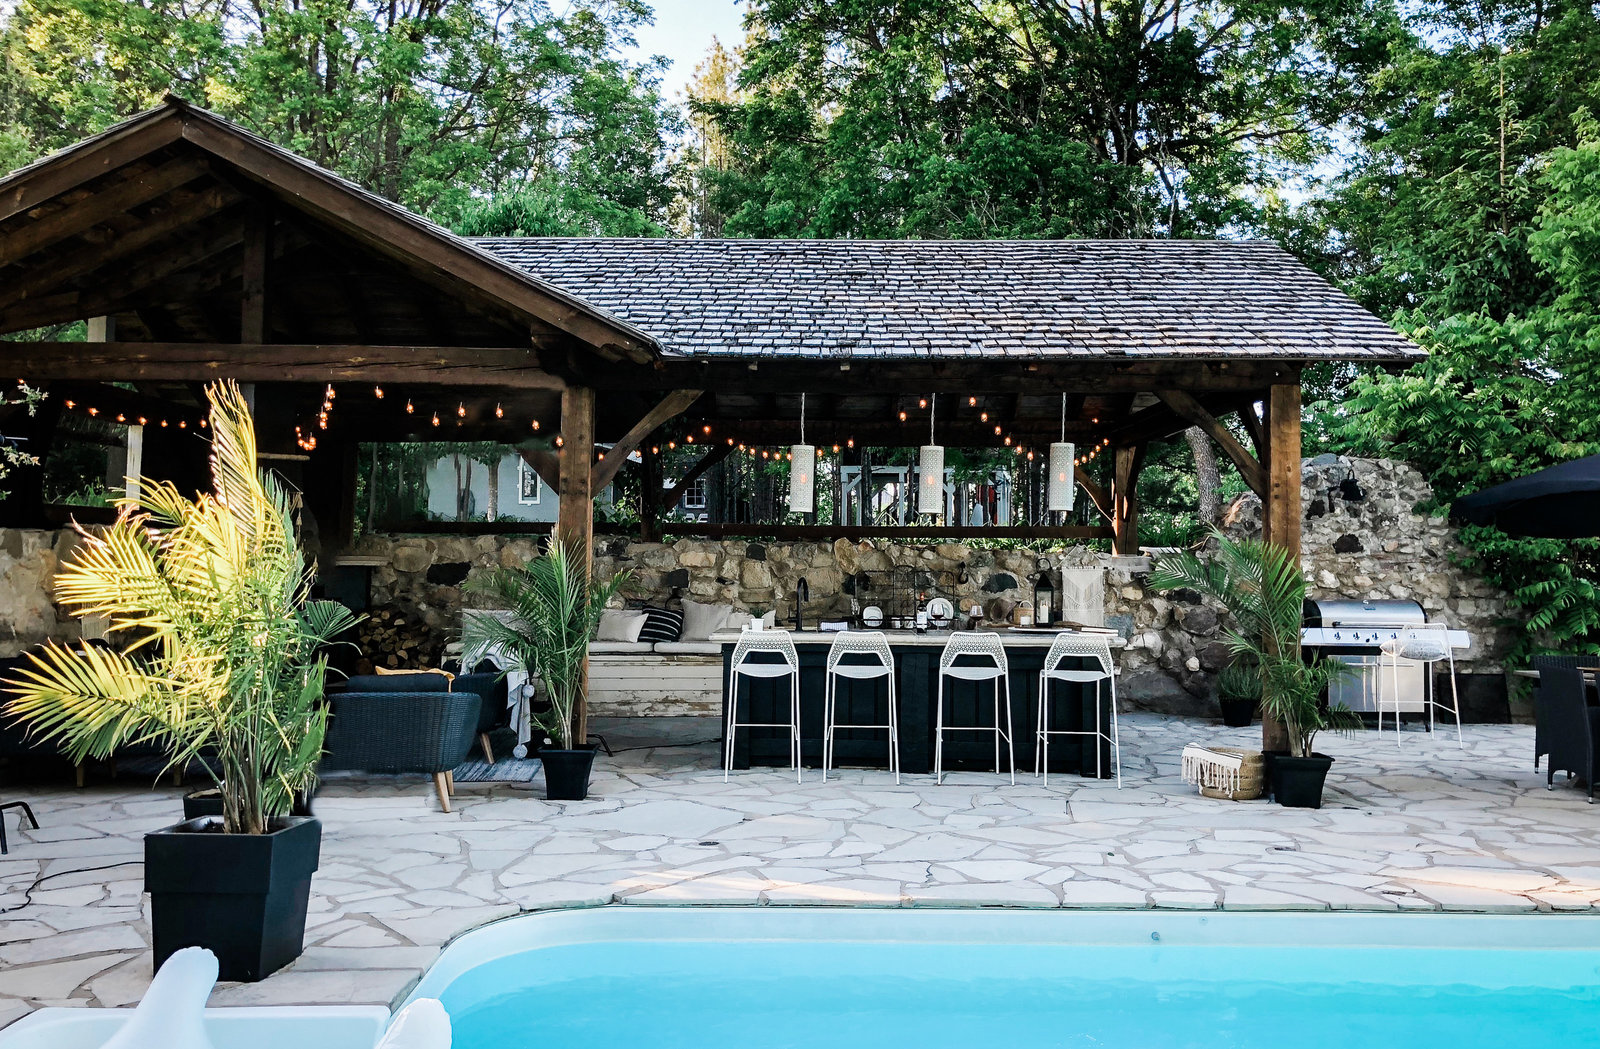 Poolside-Treehouse-Cabin-Retreat-Vacation-Rental-Lynne-Knowlton-tiny-house-1